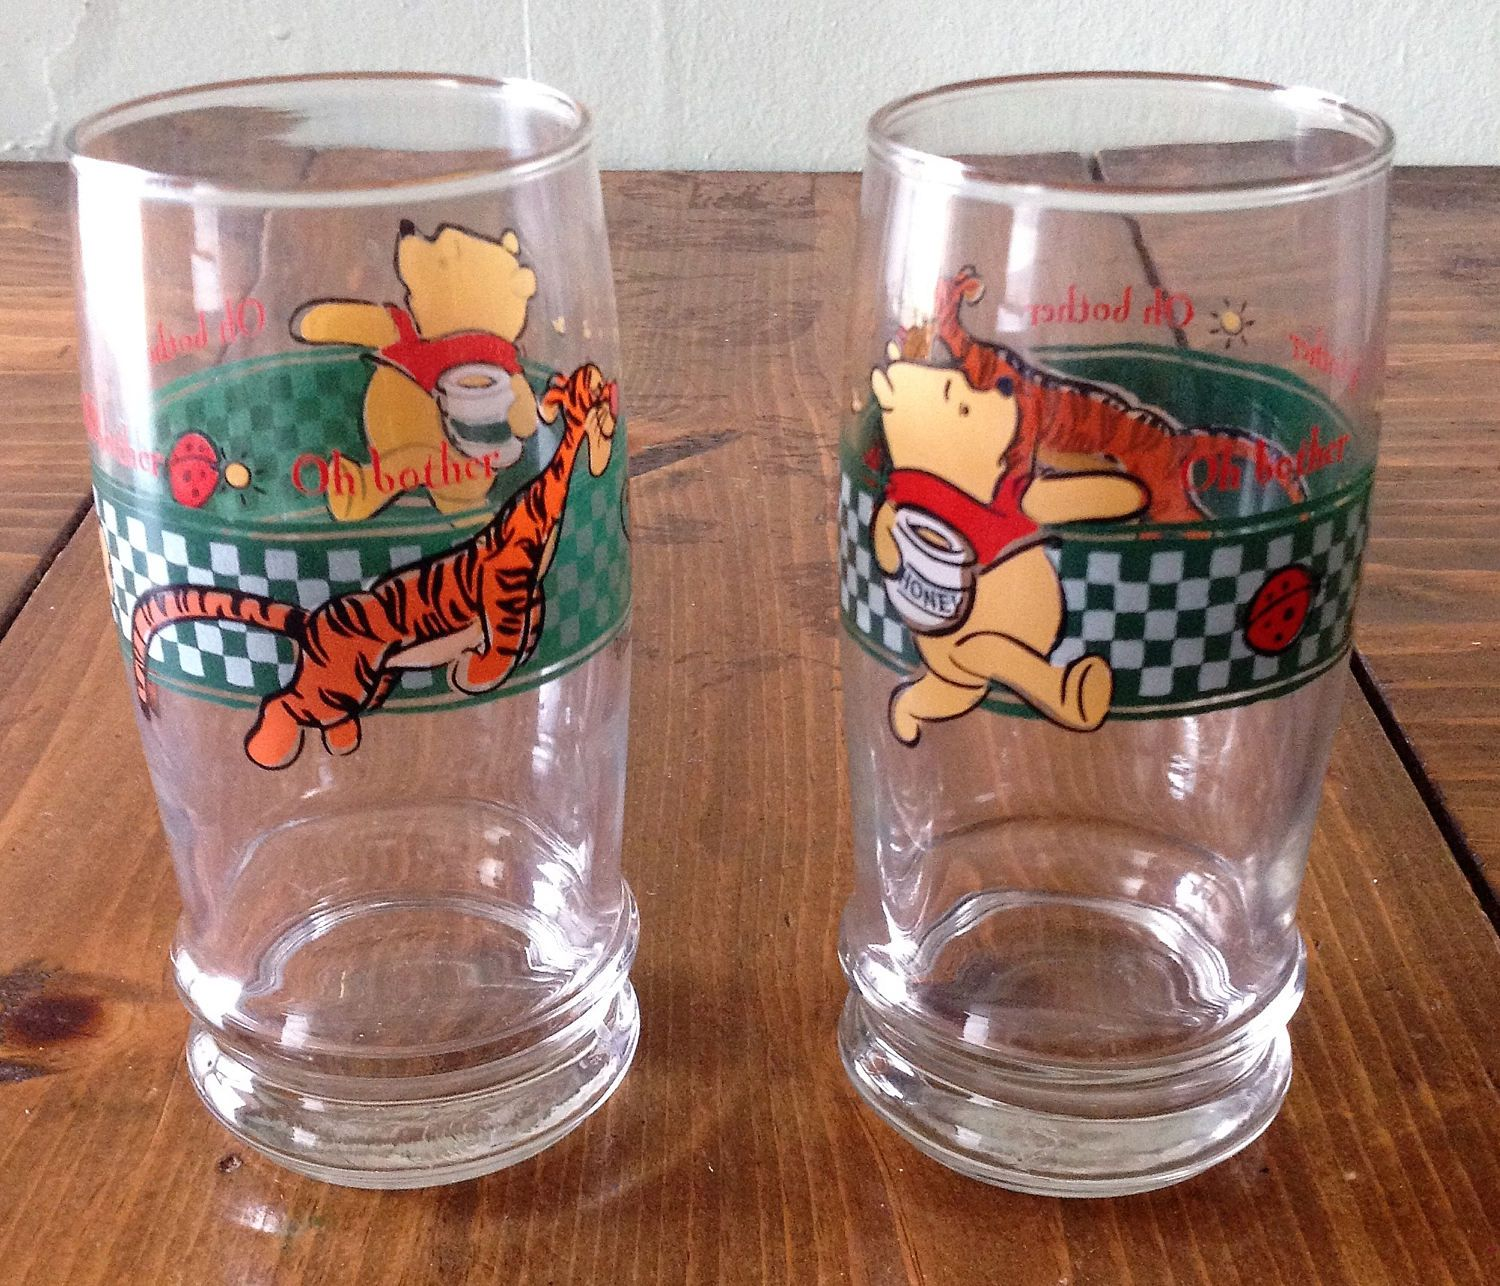 Oh Bother Winnie the Pooh & Tigger Anchor Hocking Glasses Kitchen Disney Beverage Tumblers Cups Drinkware Juice Coffee Tea Iced Kids prop by Piklandia on Etsy